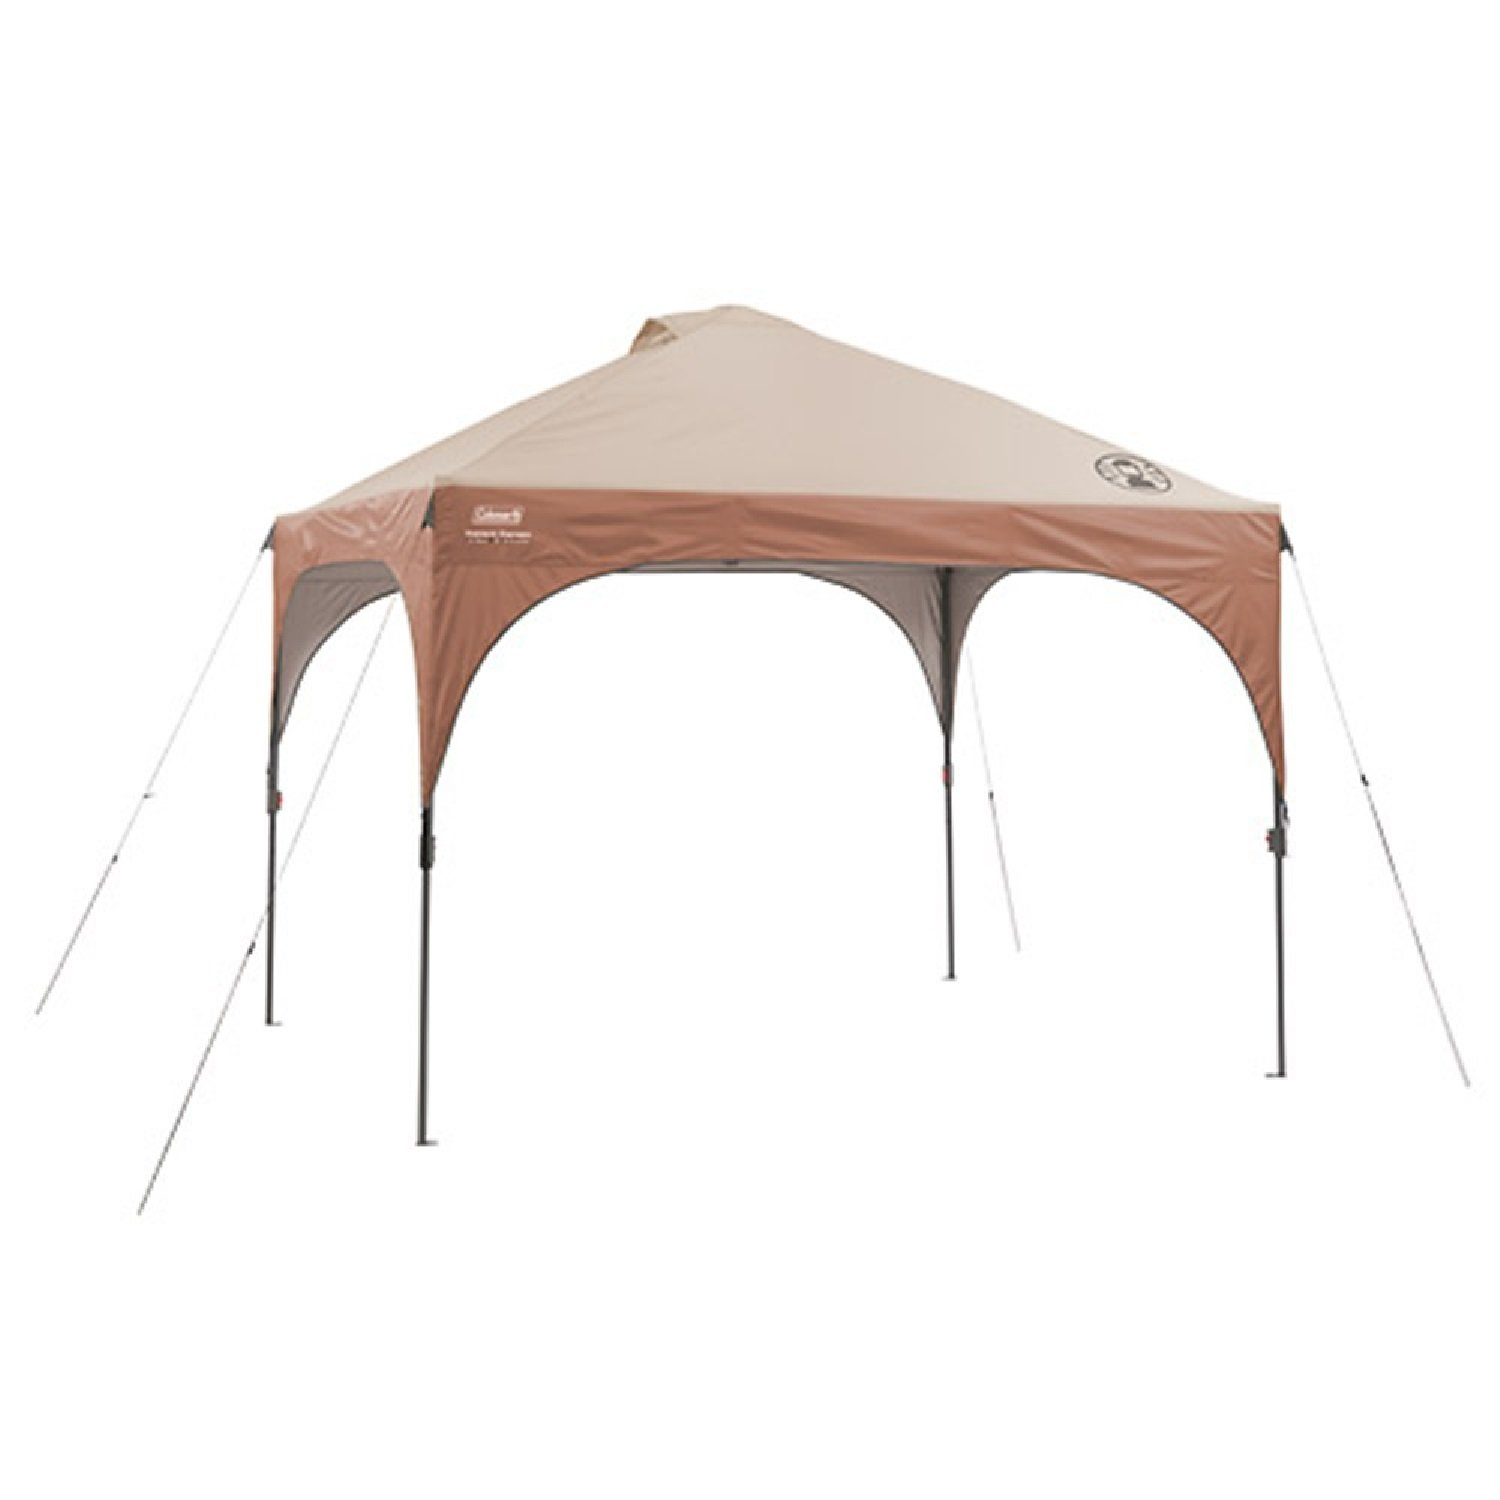 Coleman Instant Pop-Up Canopy Tent and Sun Shelter with LED Lighting, 10 x 10 Feet by Coleman (Image #1)